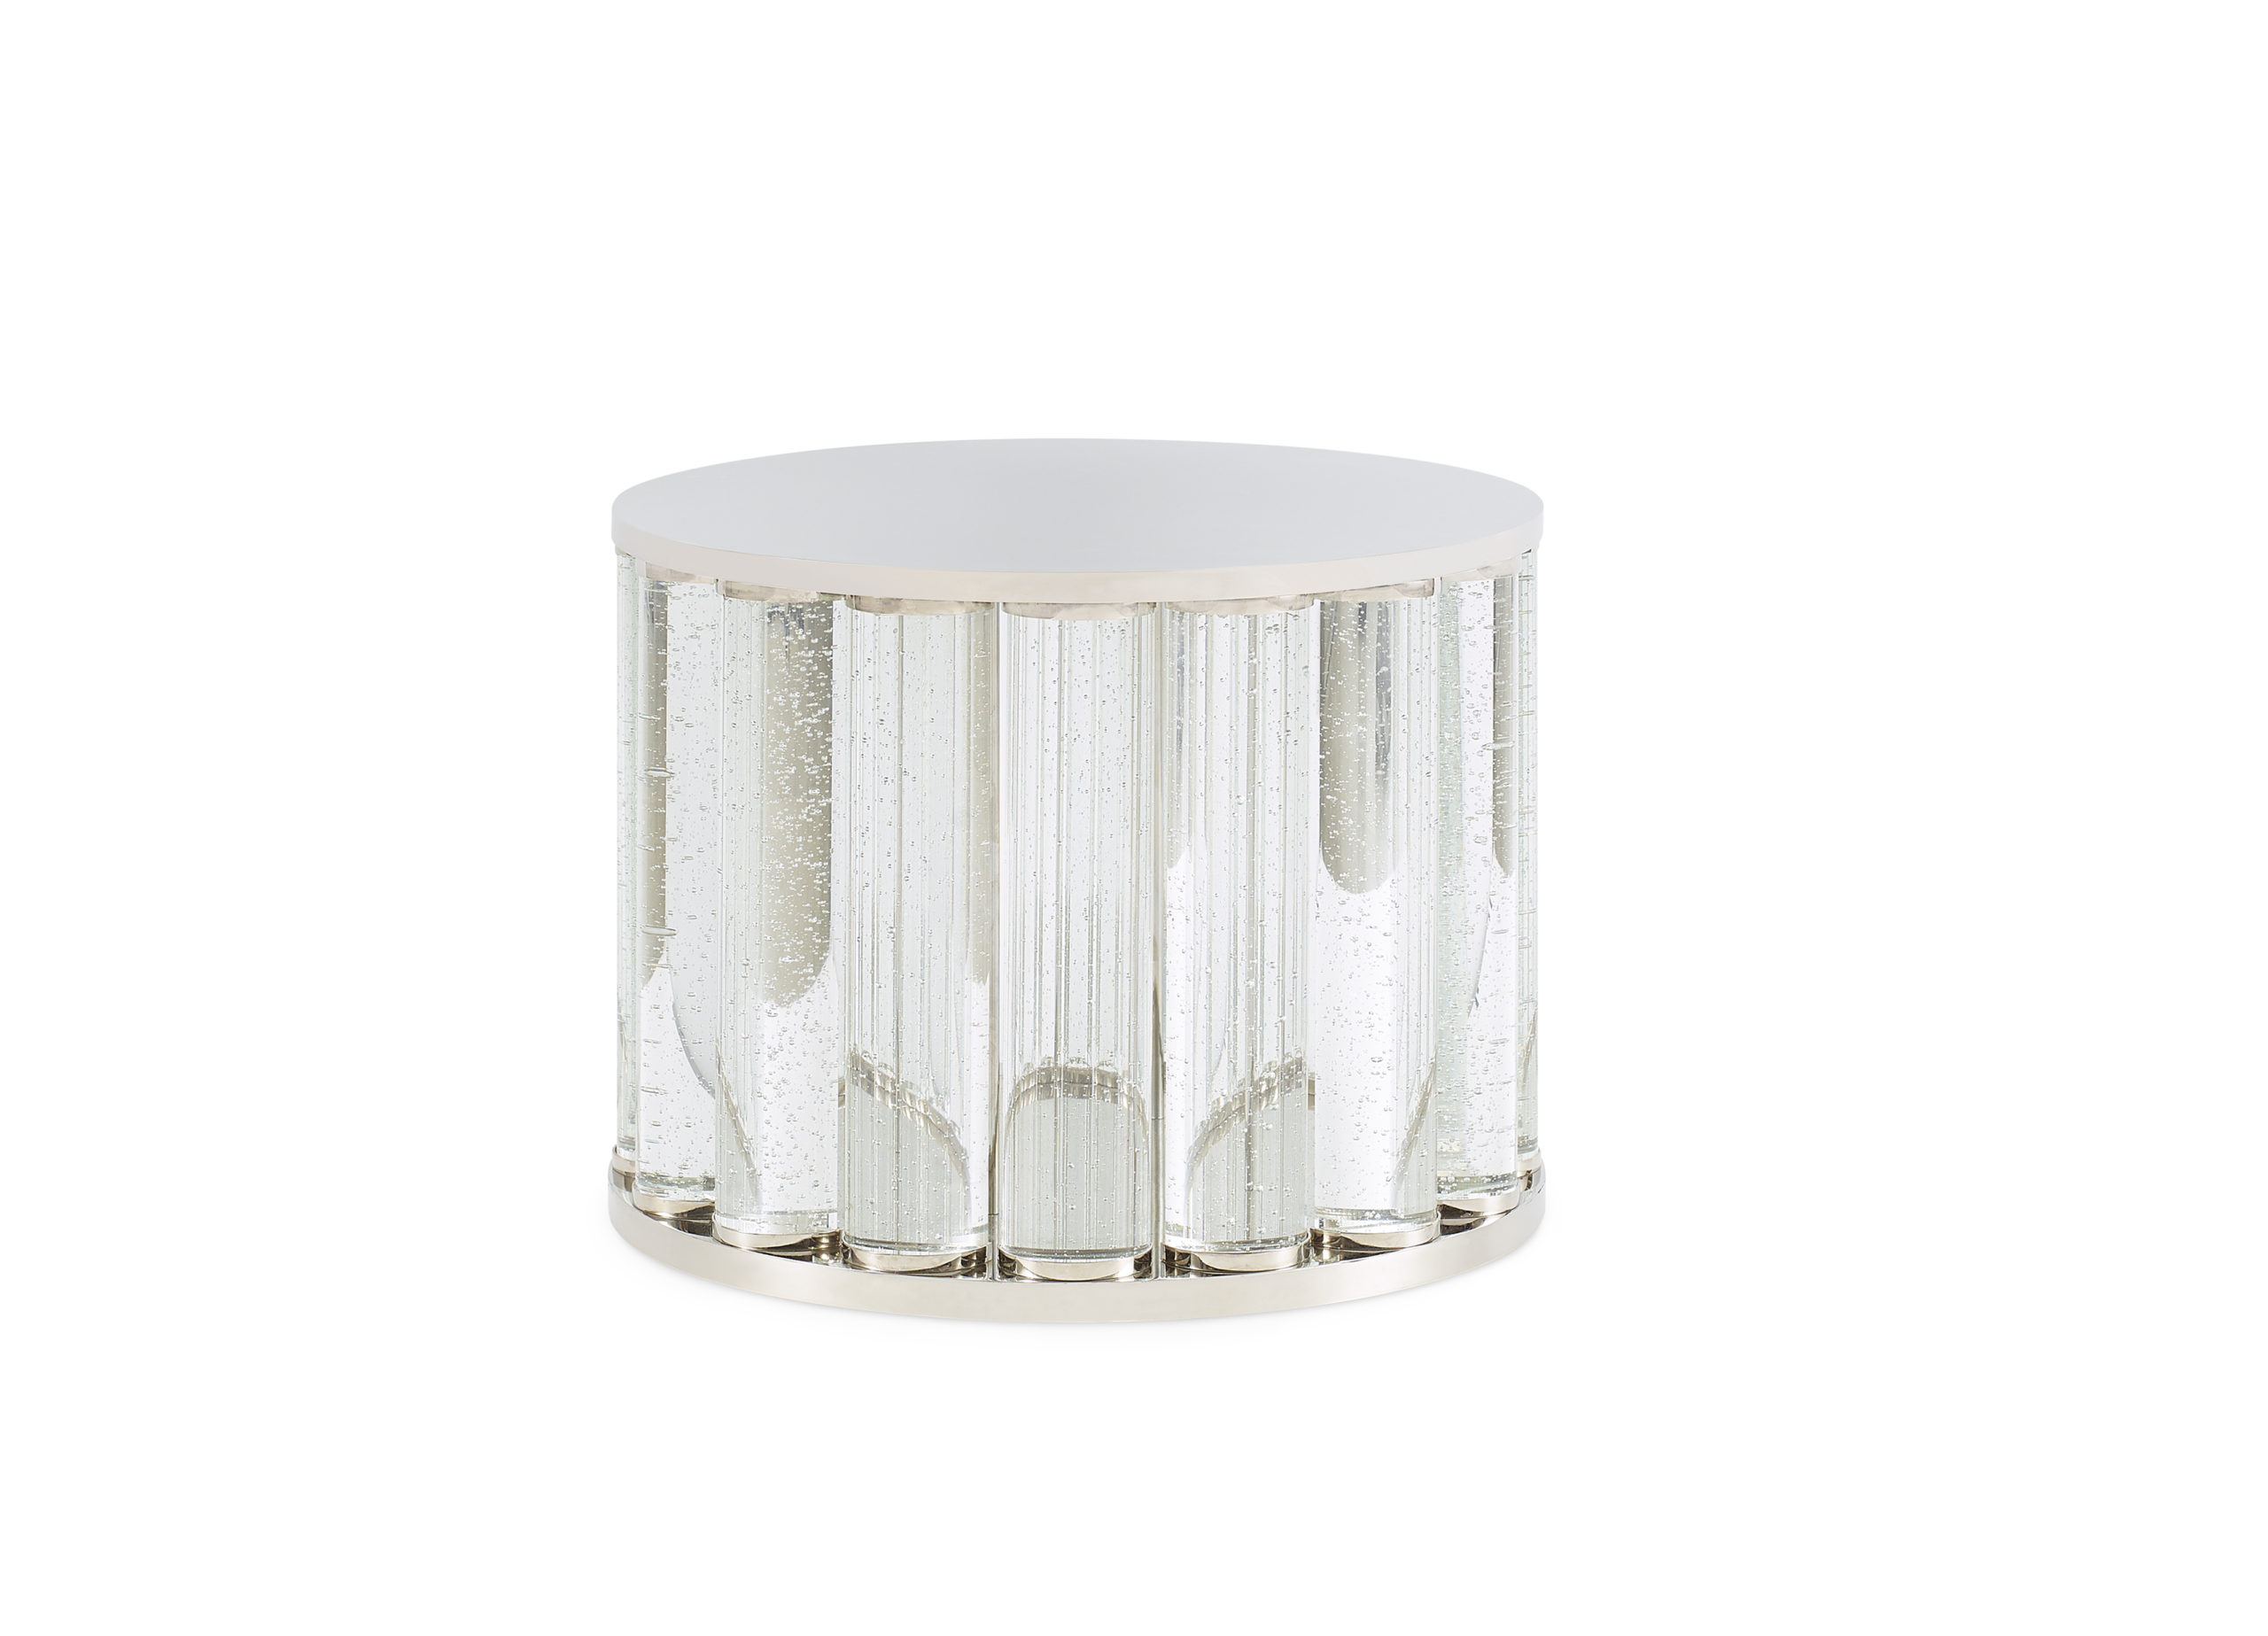 Baker_products_WNWN_menlo_cocktail_table_BAA3252_FRONT-scaled-2